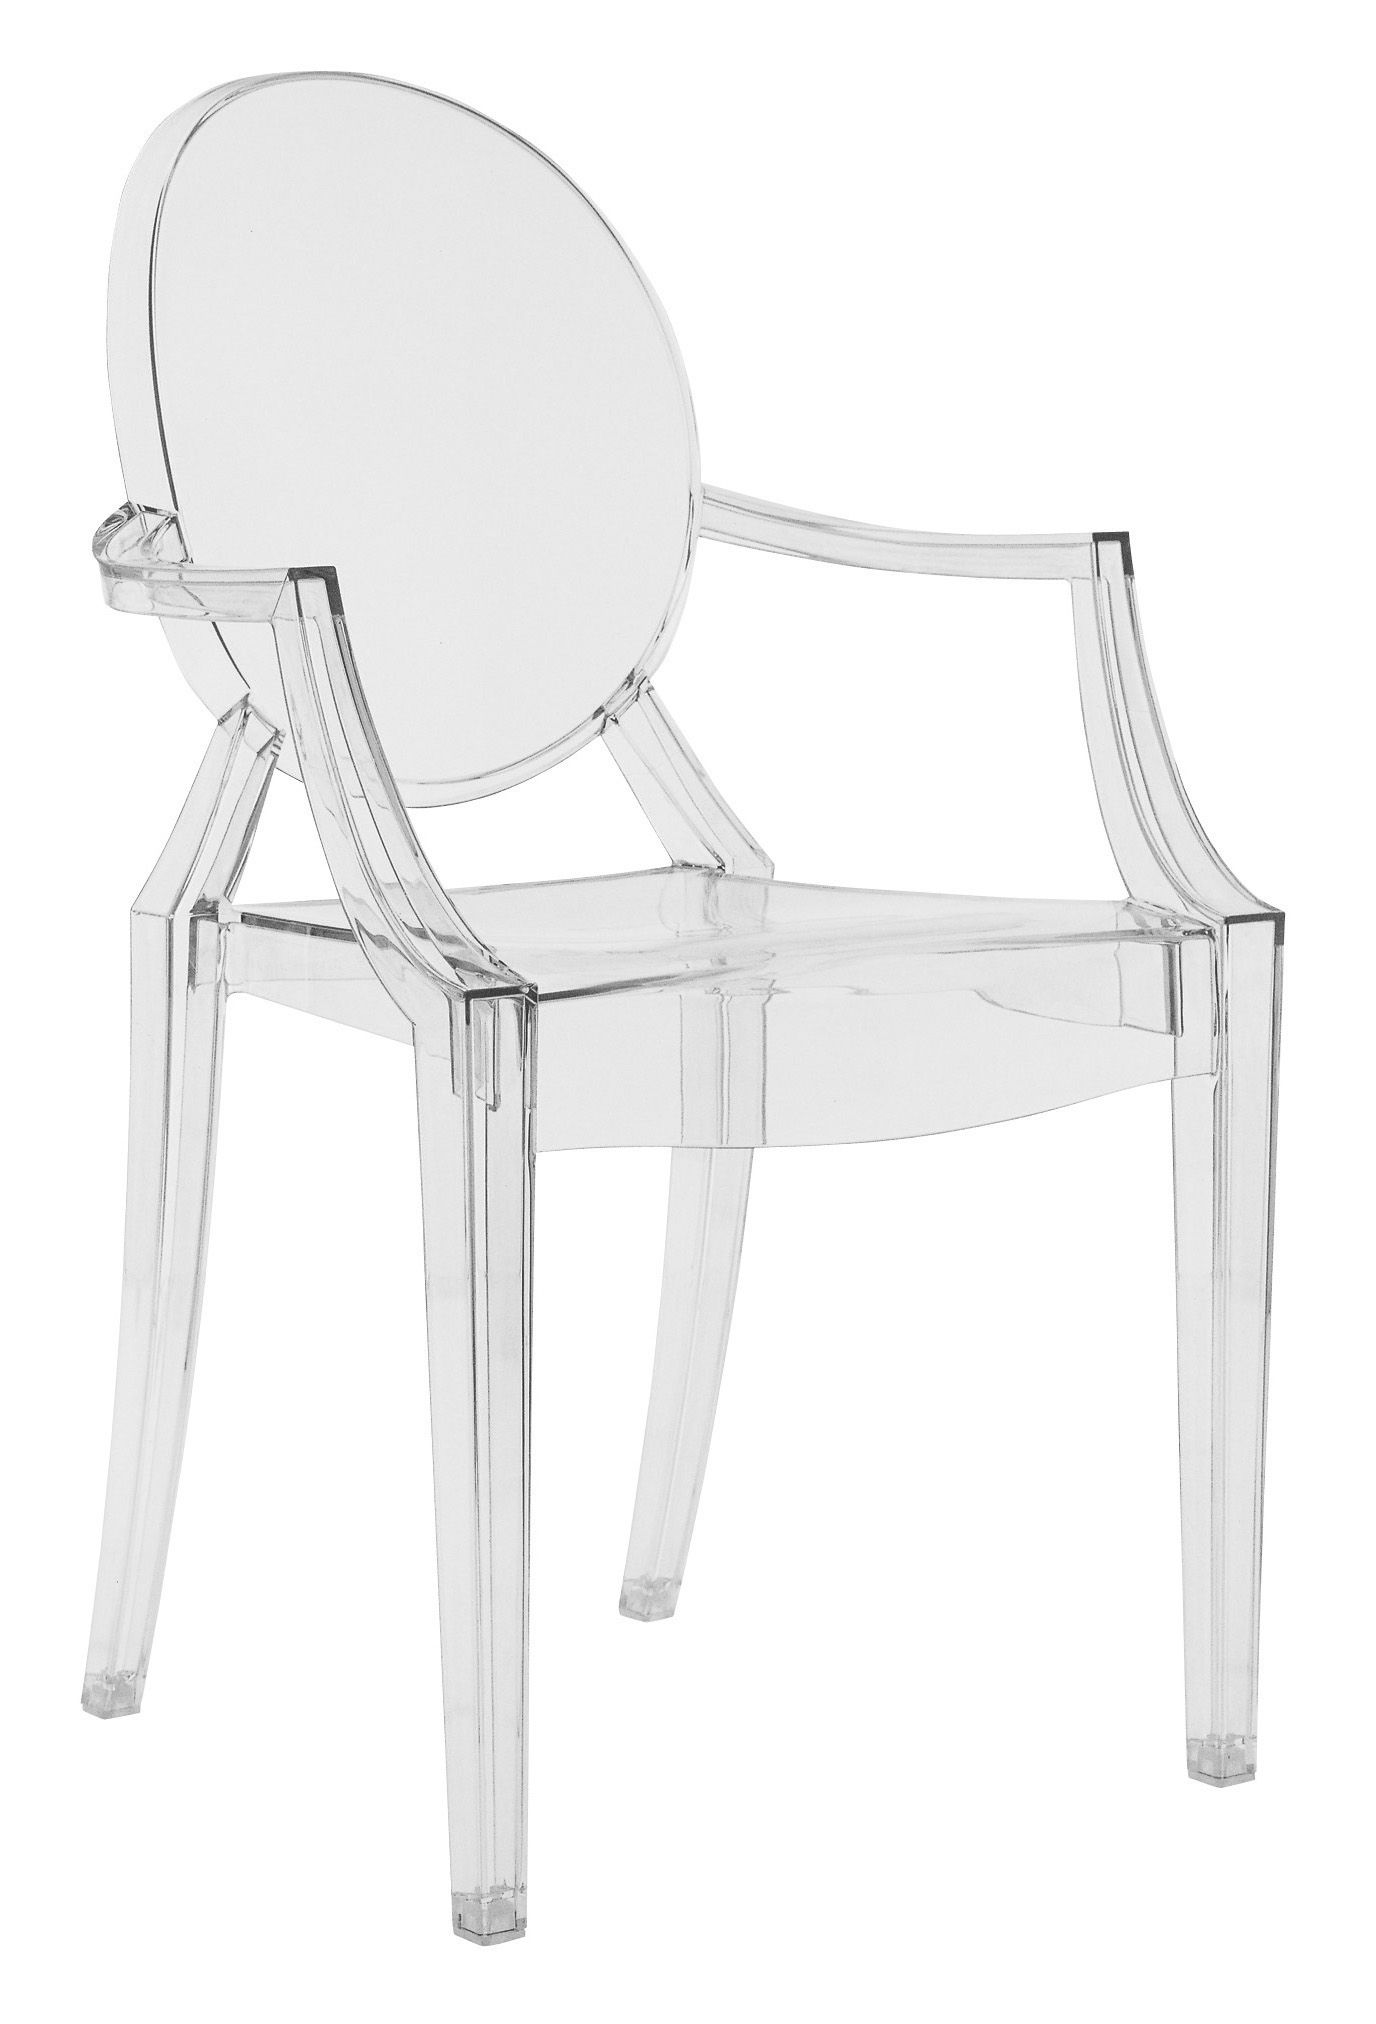 Mobilier - Chaises, fauteuils de salle à manger - Fauteuil empilable Louis Ghost transparent / Polycarbonate - Kartell - Cristal transparent - Polycarbonate